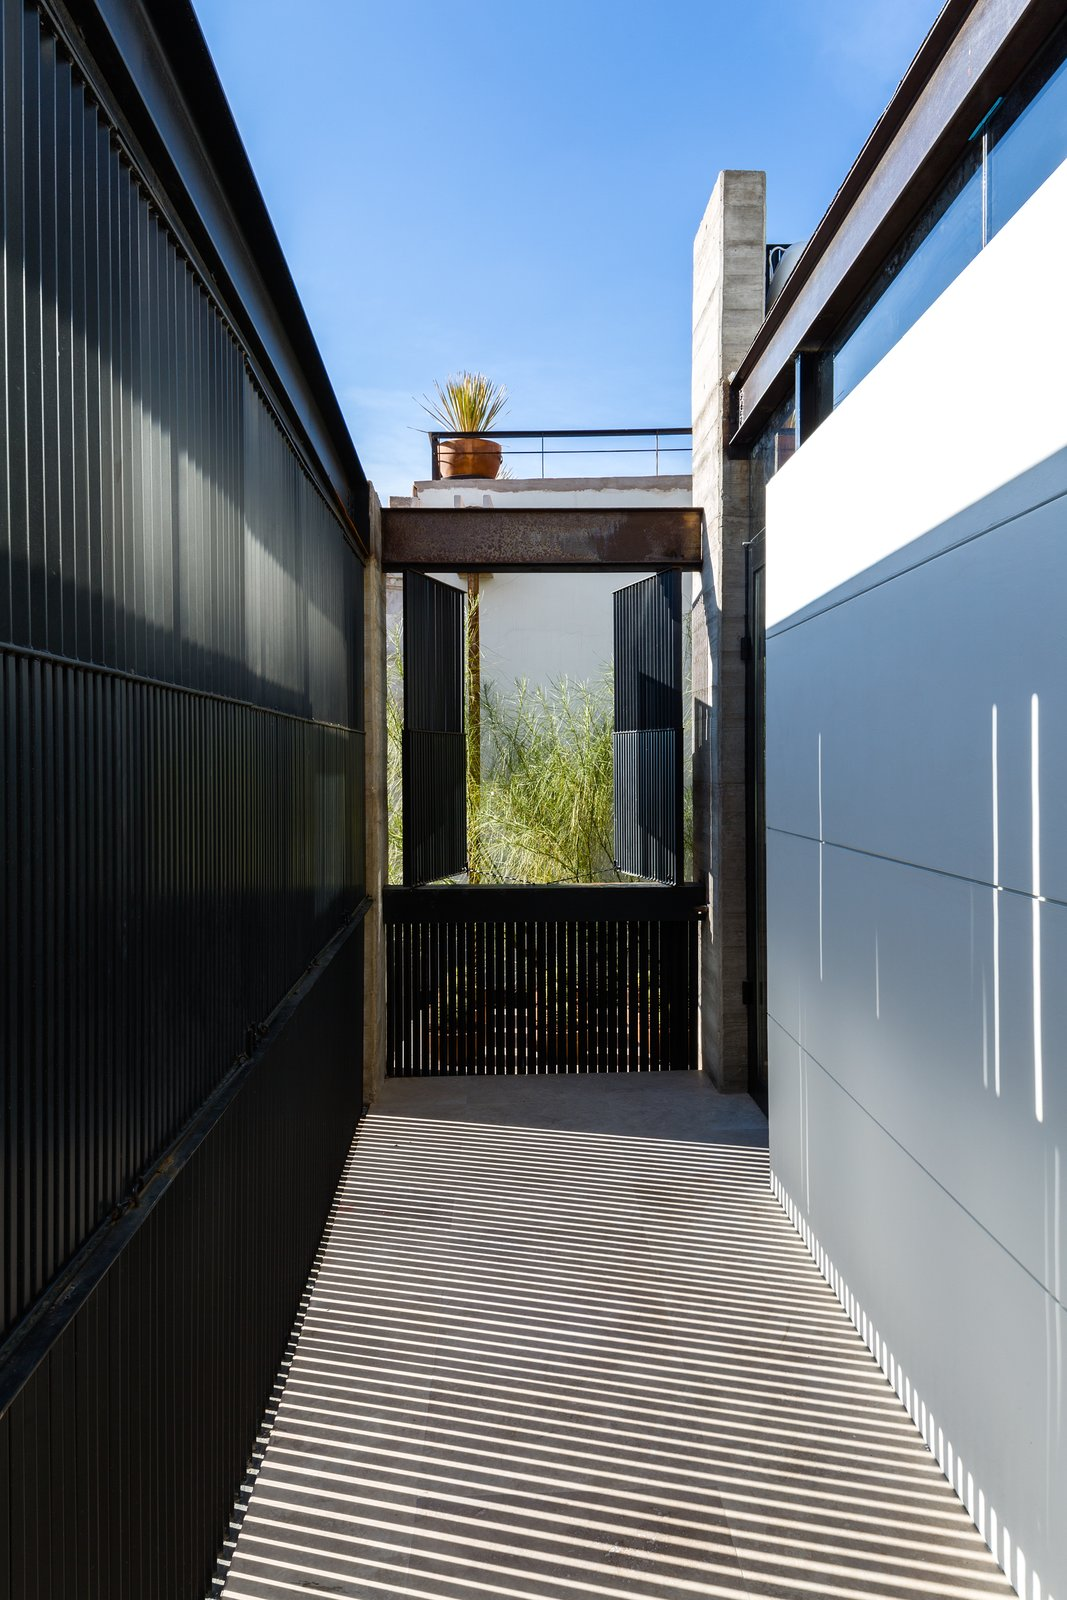 New balconies were constructed to complement the scale of the adjacent openings. The second story balcony was conceptualized as an extension of the room to the street. It can be closed when privacy is required, but opened to the street or terrace for interaction with the natural surroundings. The metallic blinds create dynamic shadow patterns as the light changes throughout the day. Hybrid Home by Sarah Akkoush